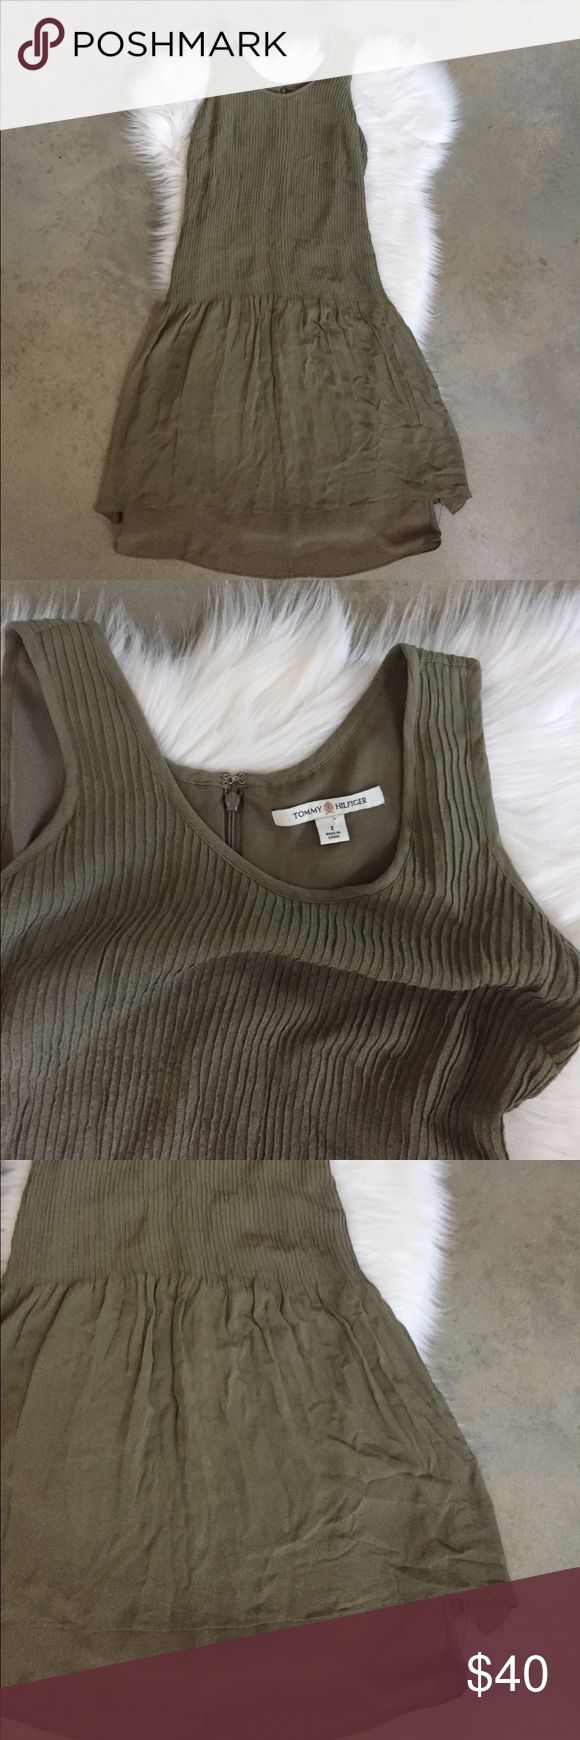 """Tommy Hilfiger Pleated Drop Waist 100% Silk Dress Gorgeous army green sleeveless silk dress from Tommy Hilfiger. Size 2, in very good used condition. Dress features pleated top, drop waist, fully lined, hidden center back zipper and is made of 100% silk.   Length - 39.5"""" Chest - 16.5""""  Please feel free to ask any questions. No trades, offers welcome. Tommy Hilfiger Dresses Mini"""